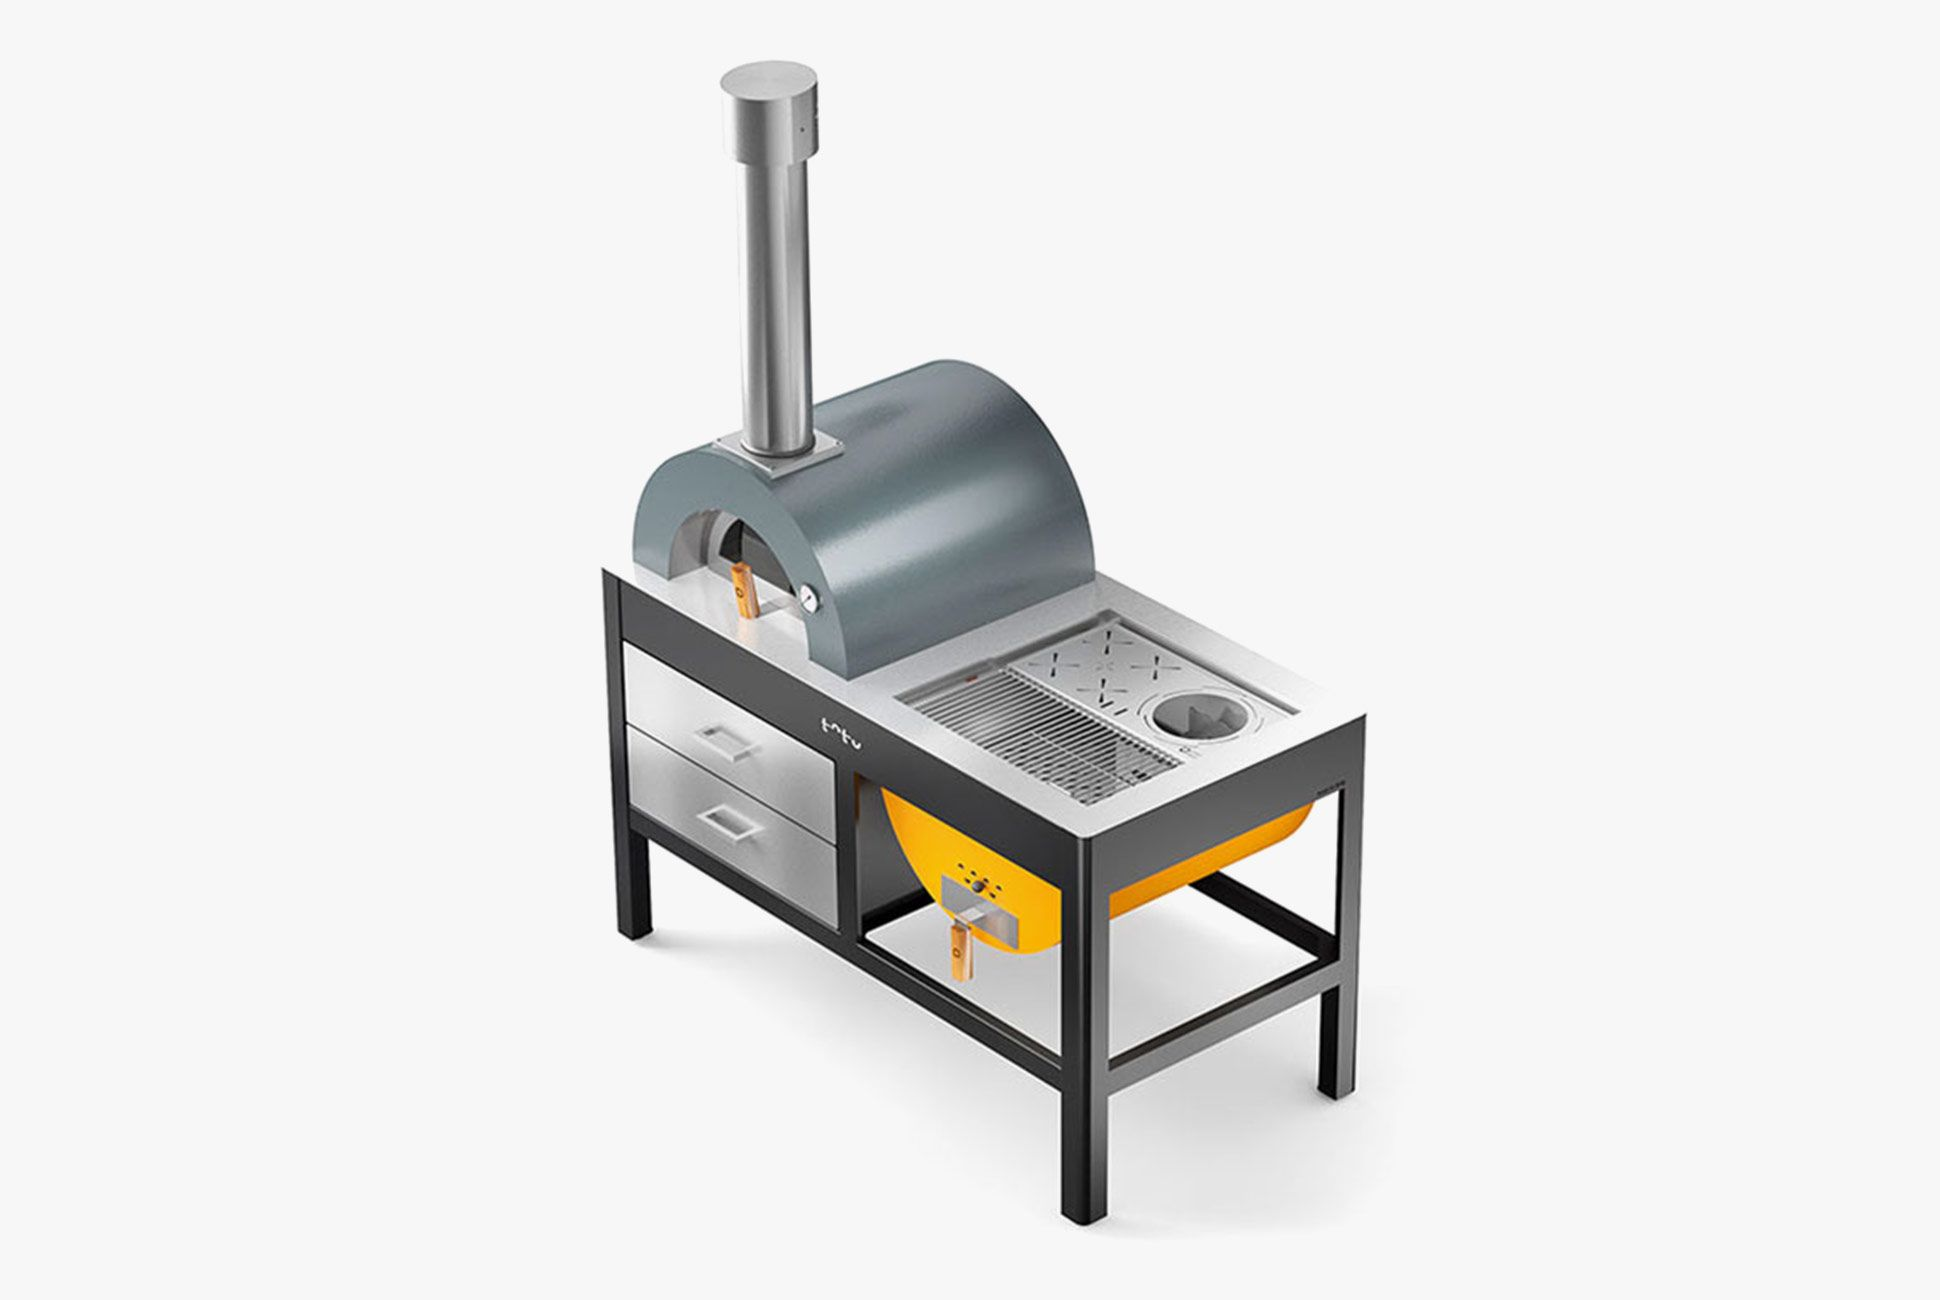 Toto-Grill-Oven-Gear-Patrol-Slide-5